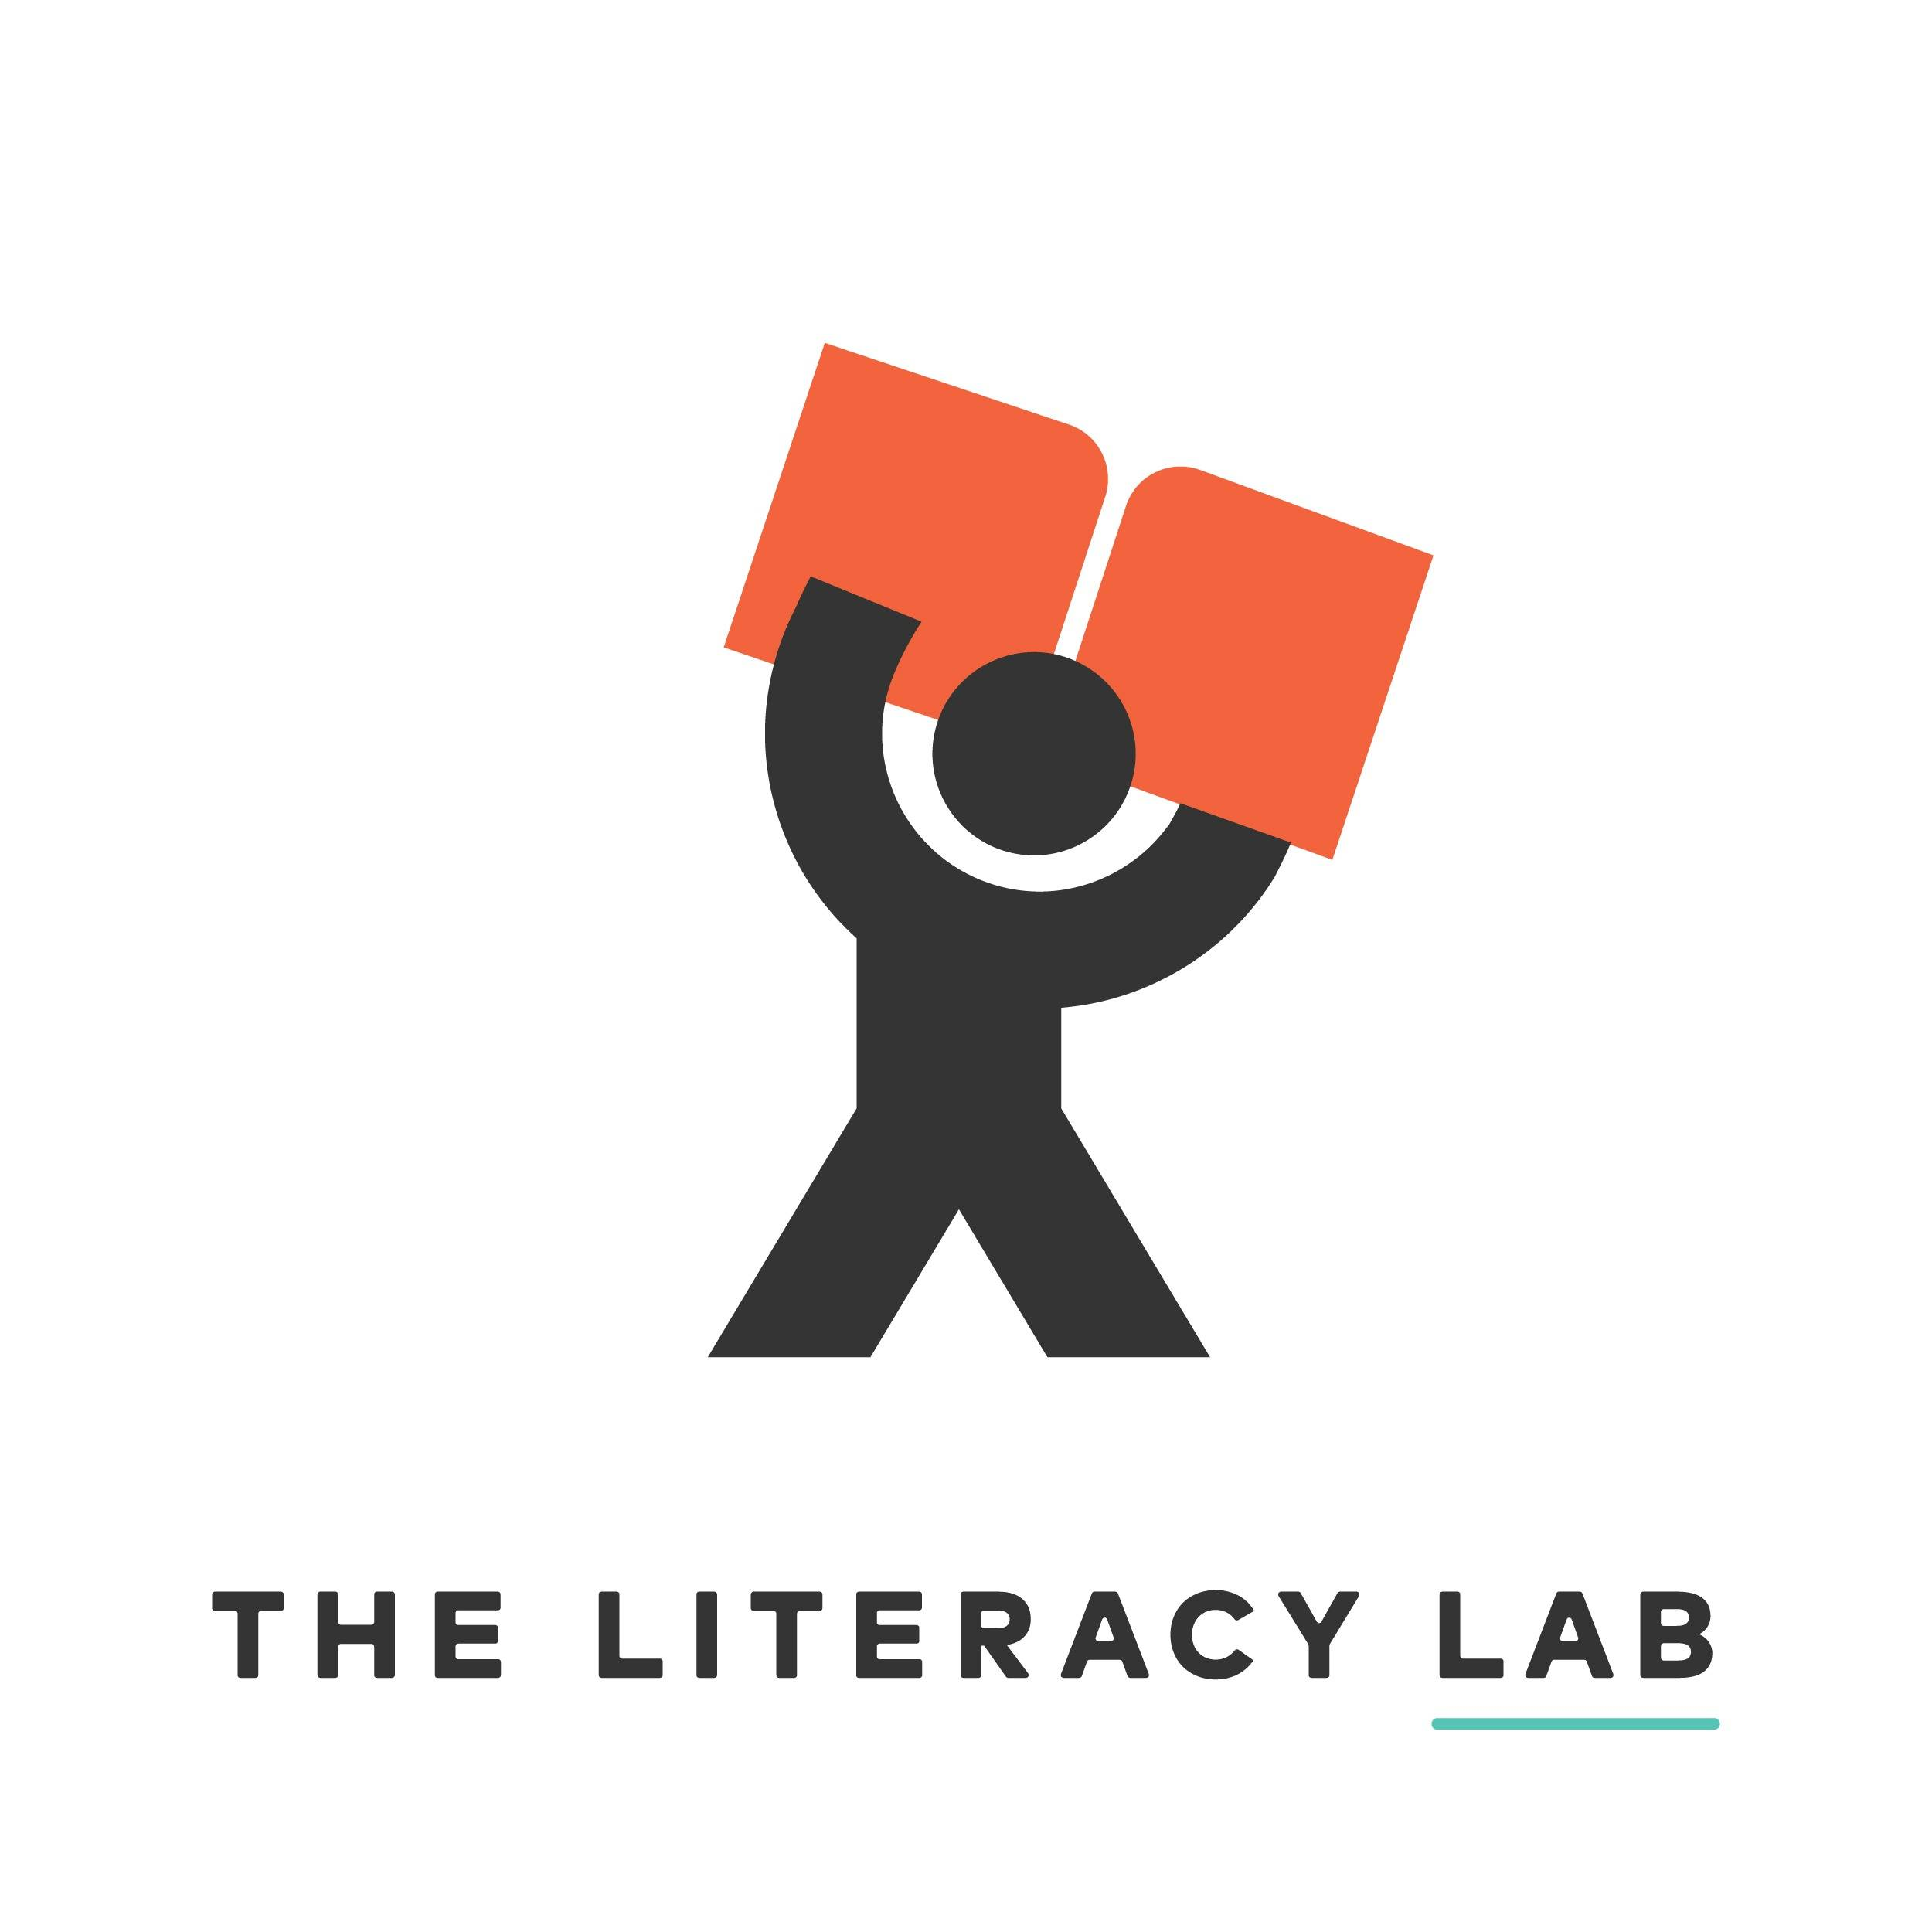 Logo of The Literacy Lab